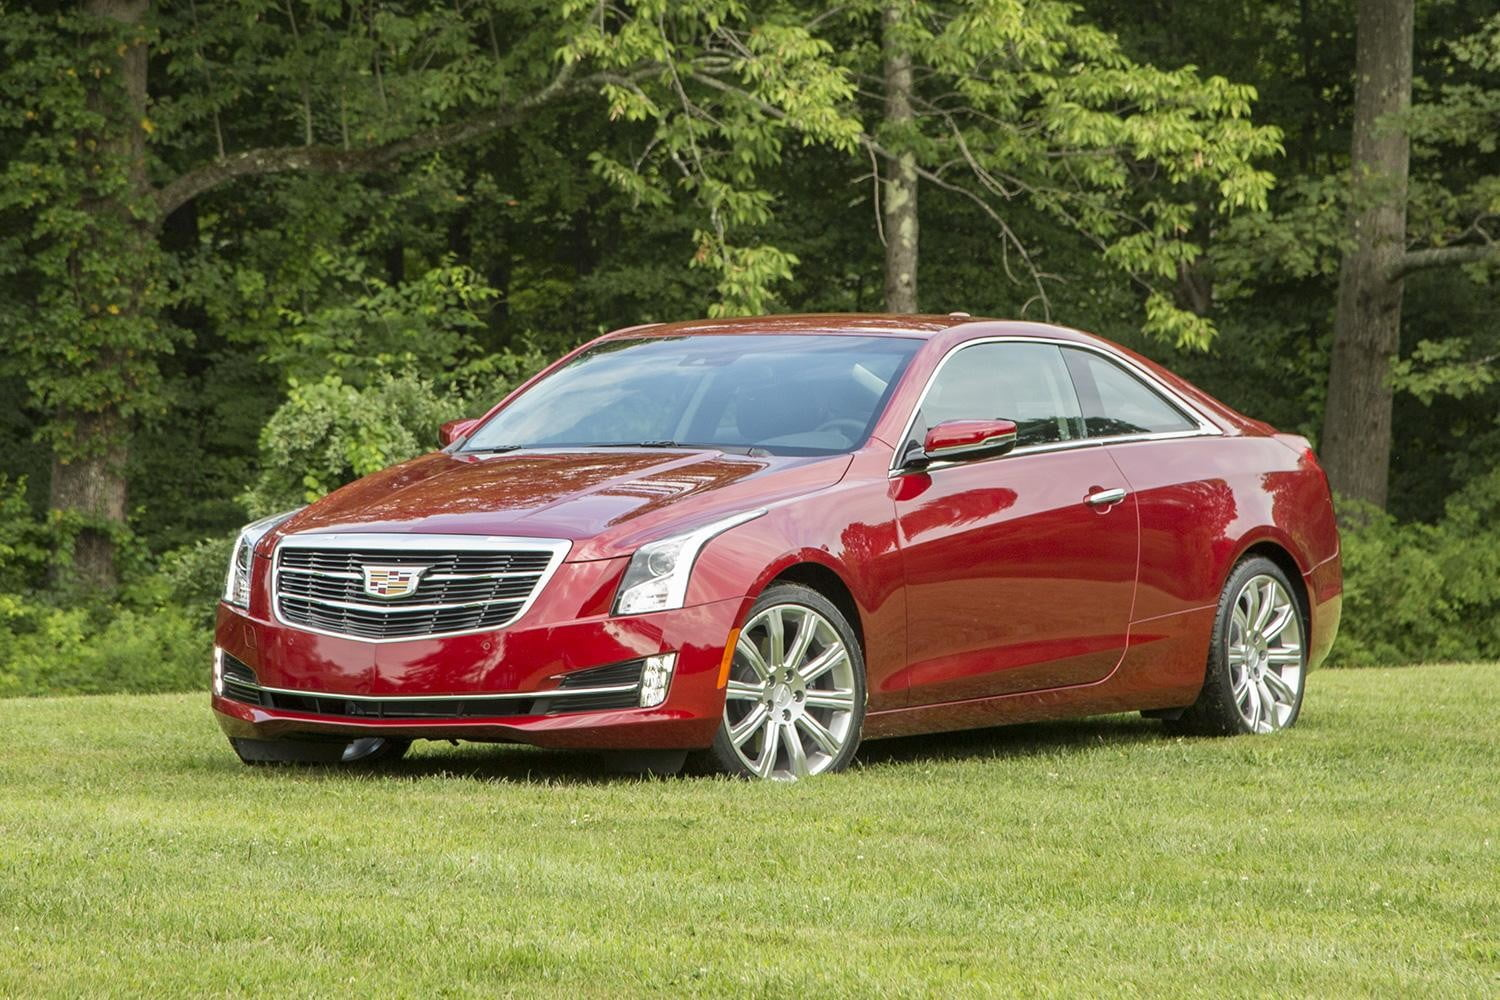 coupe classic luxury cadillac two a door now ats as offered